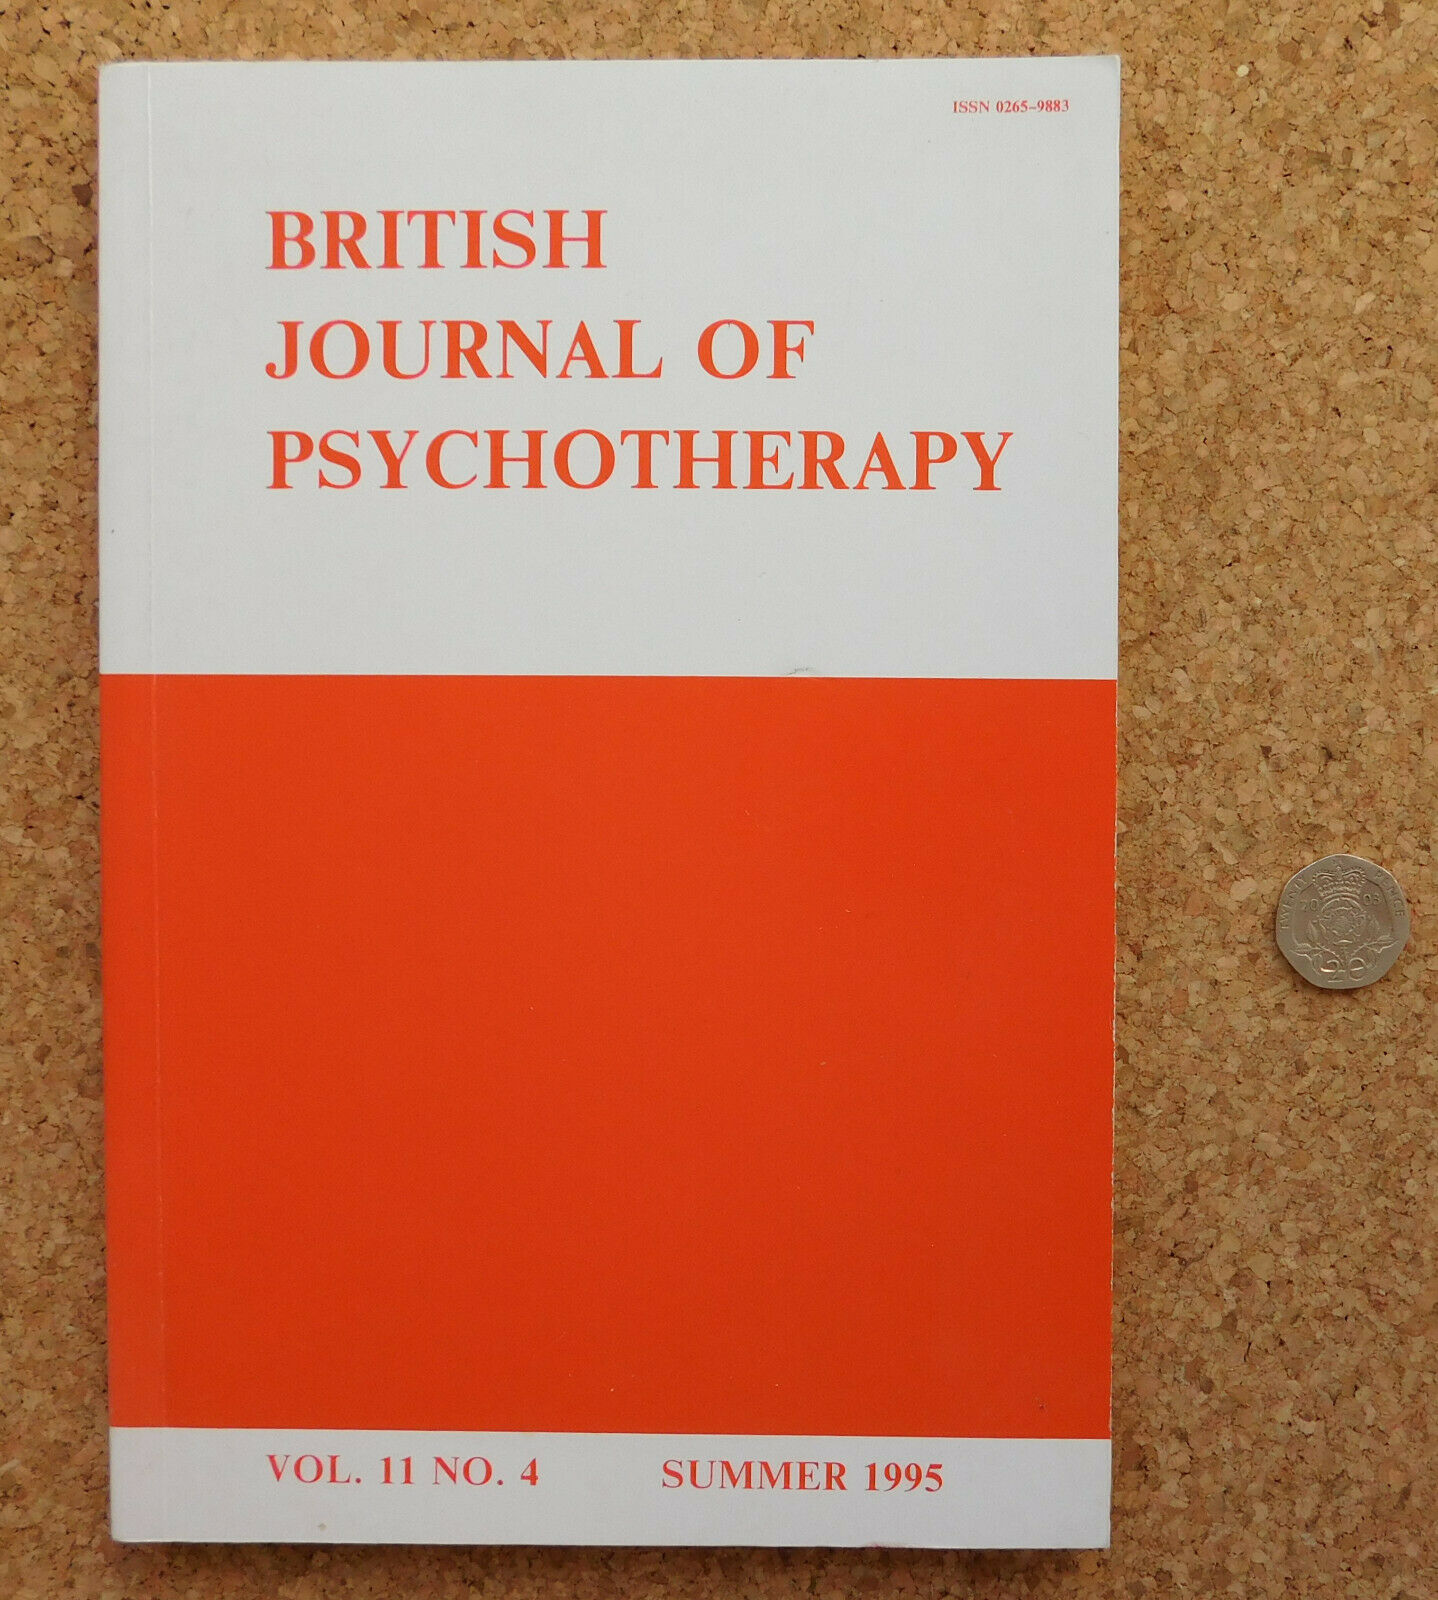 British Journal of Psychotherapy 1995 medical book 1990s mental health medicine